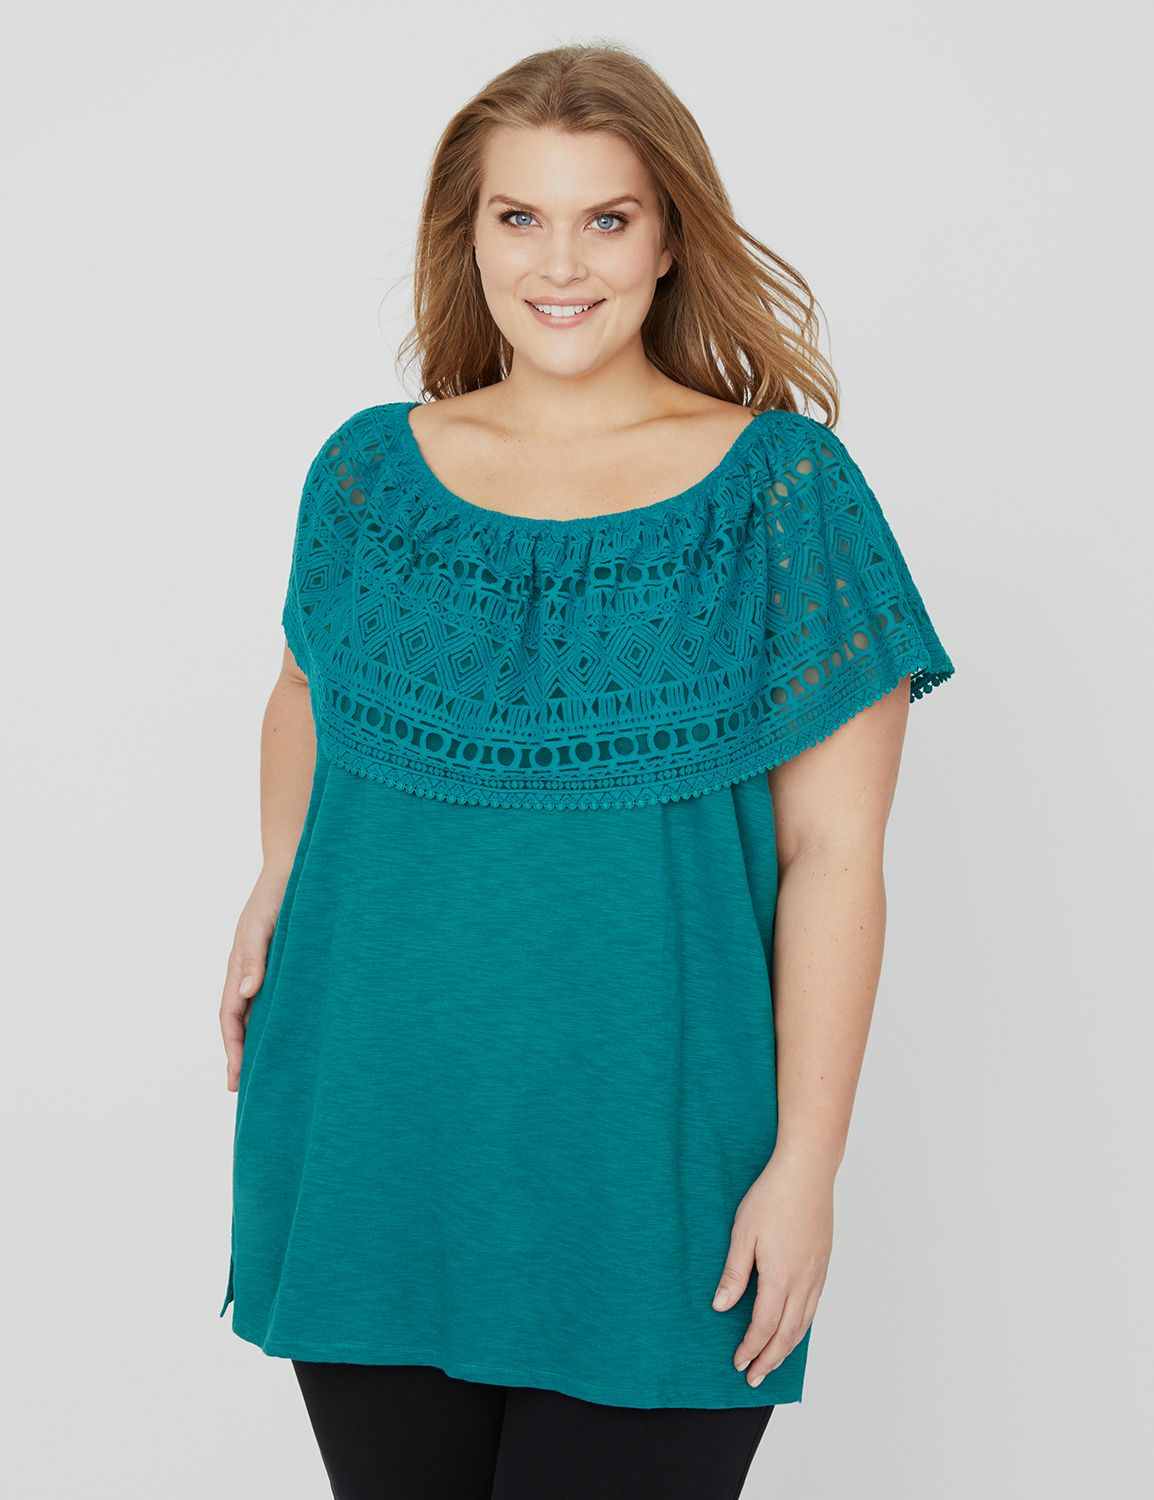 Shaded Cove Off-the-Shoulder Top 1088202 BURNOUT FLOUNCE OFF SHOULDE MP-300101840